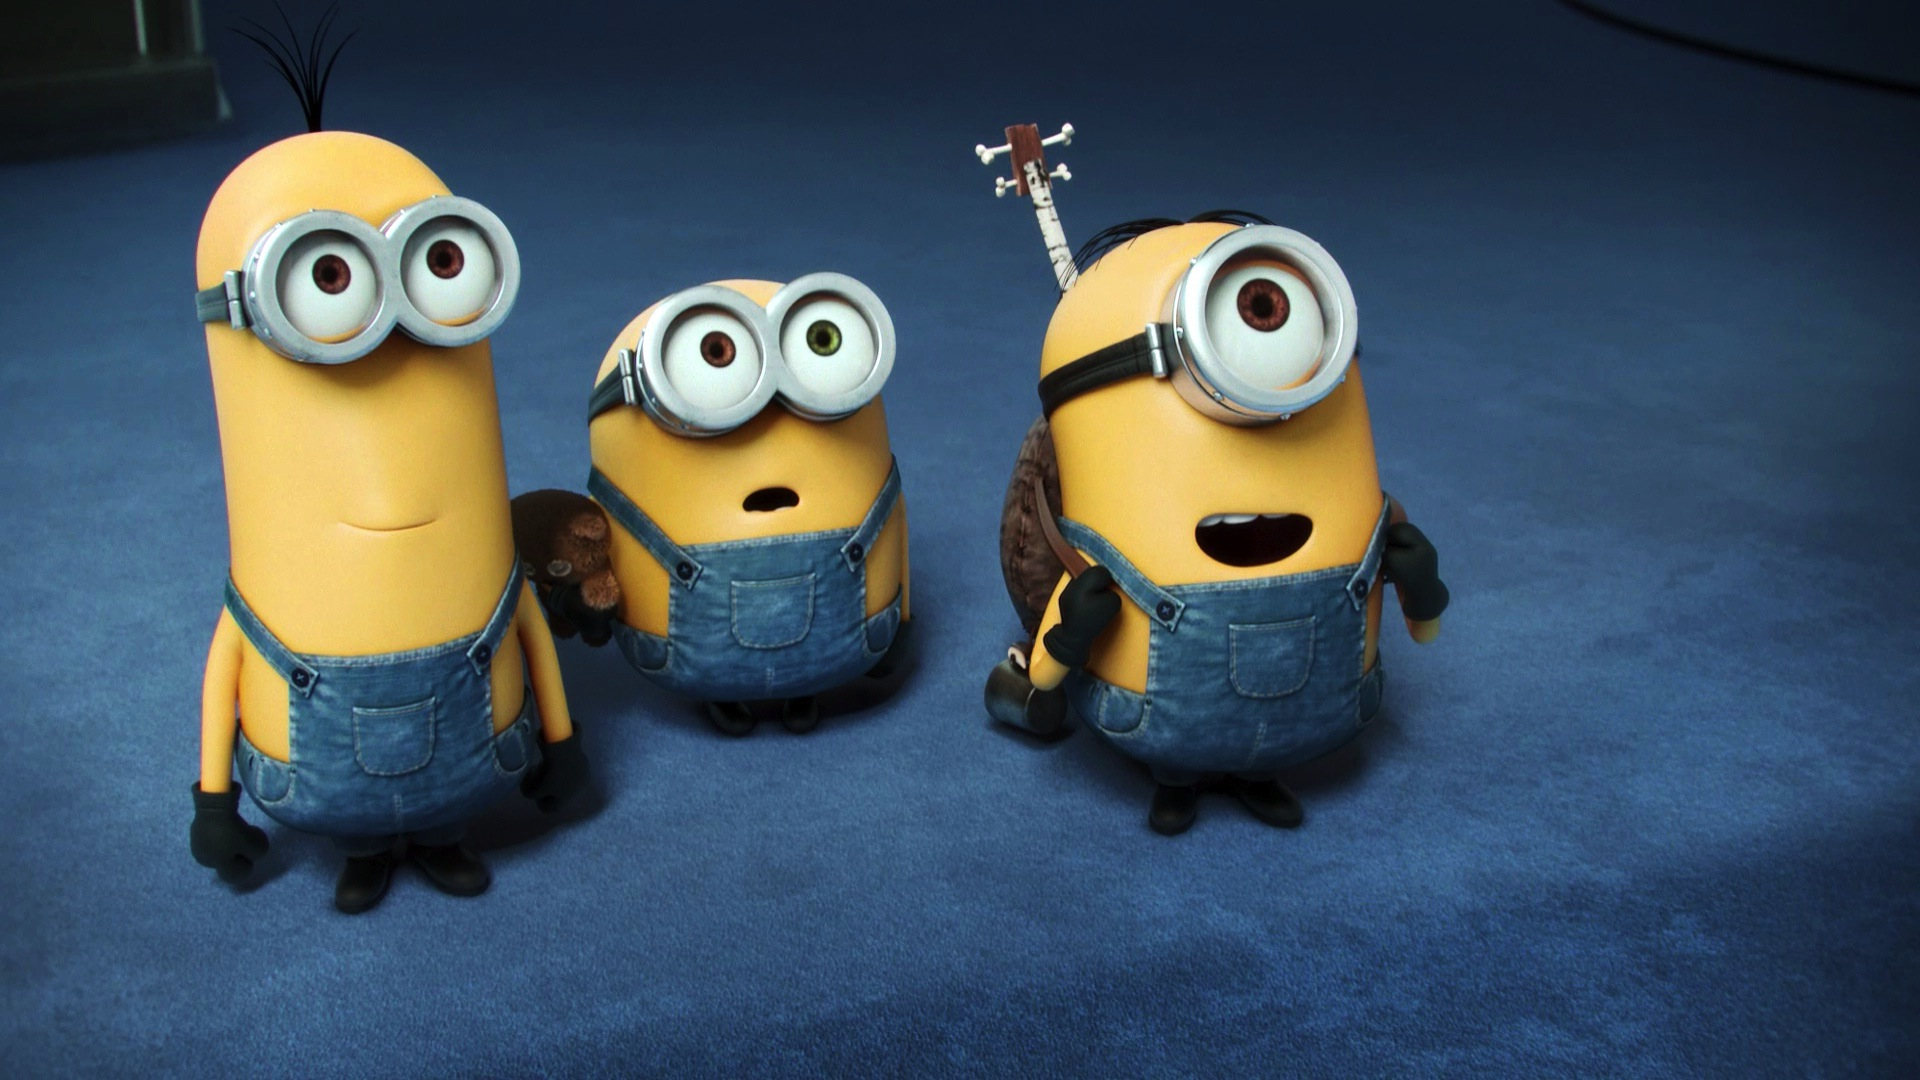 kevin bob minions, hd cartoons, 4k wallpapers, images, backgrounds